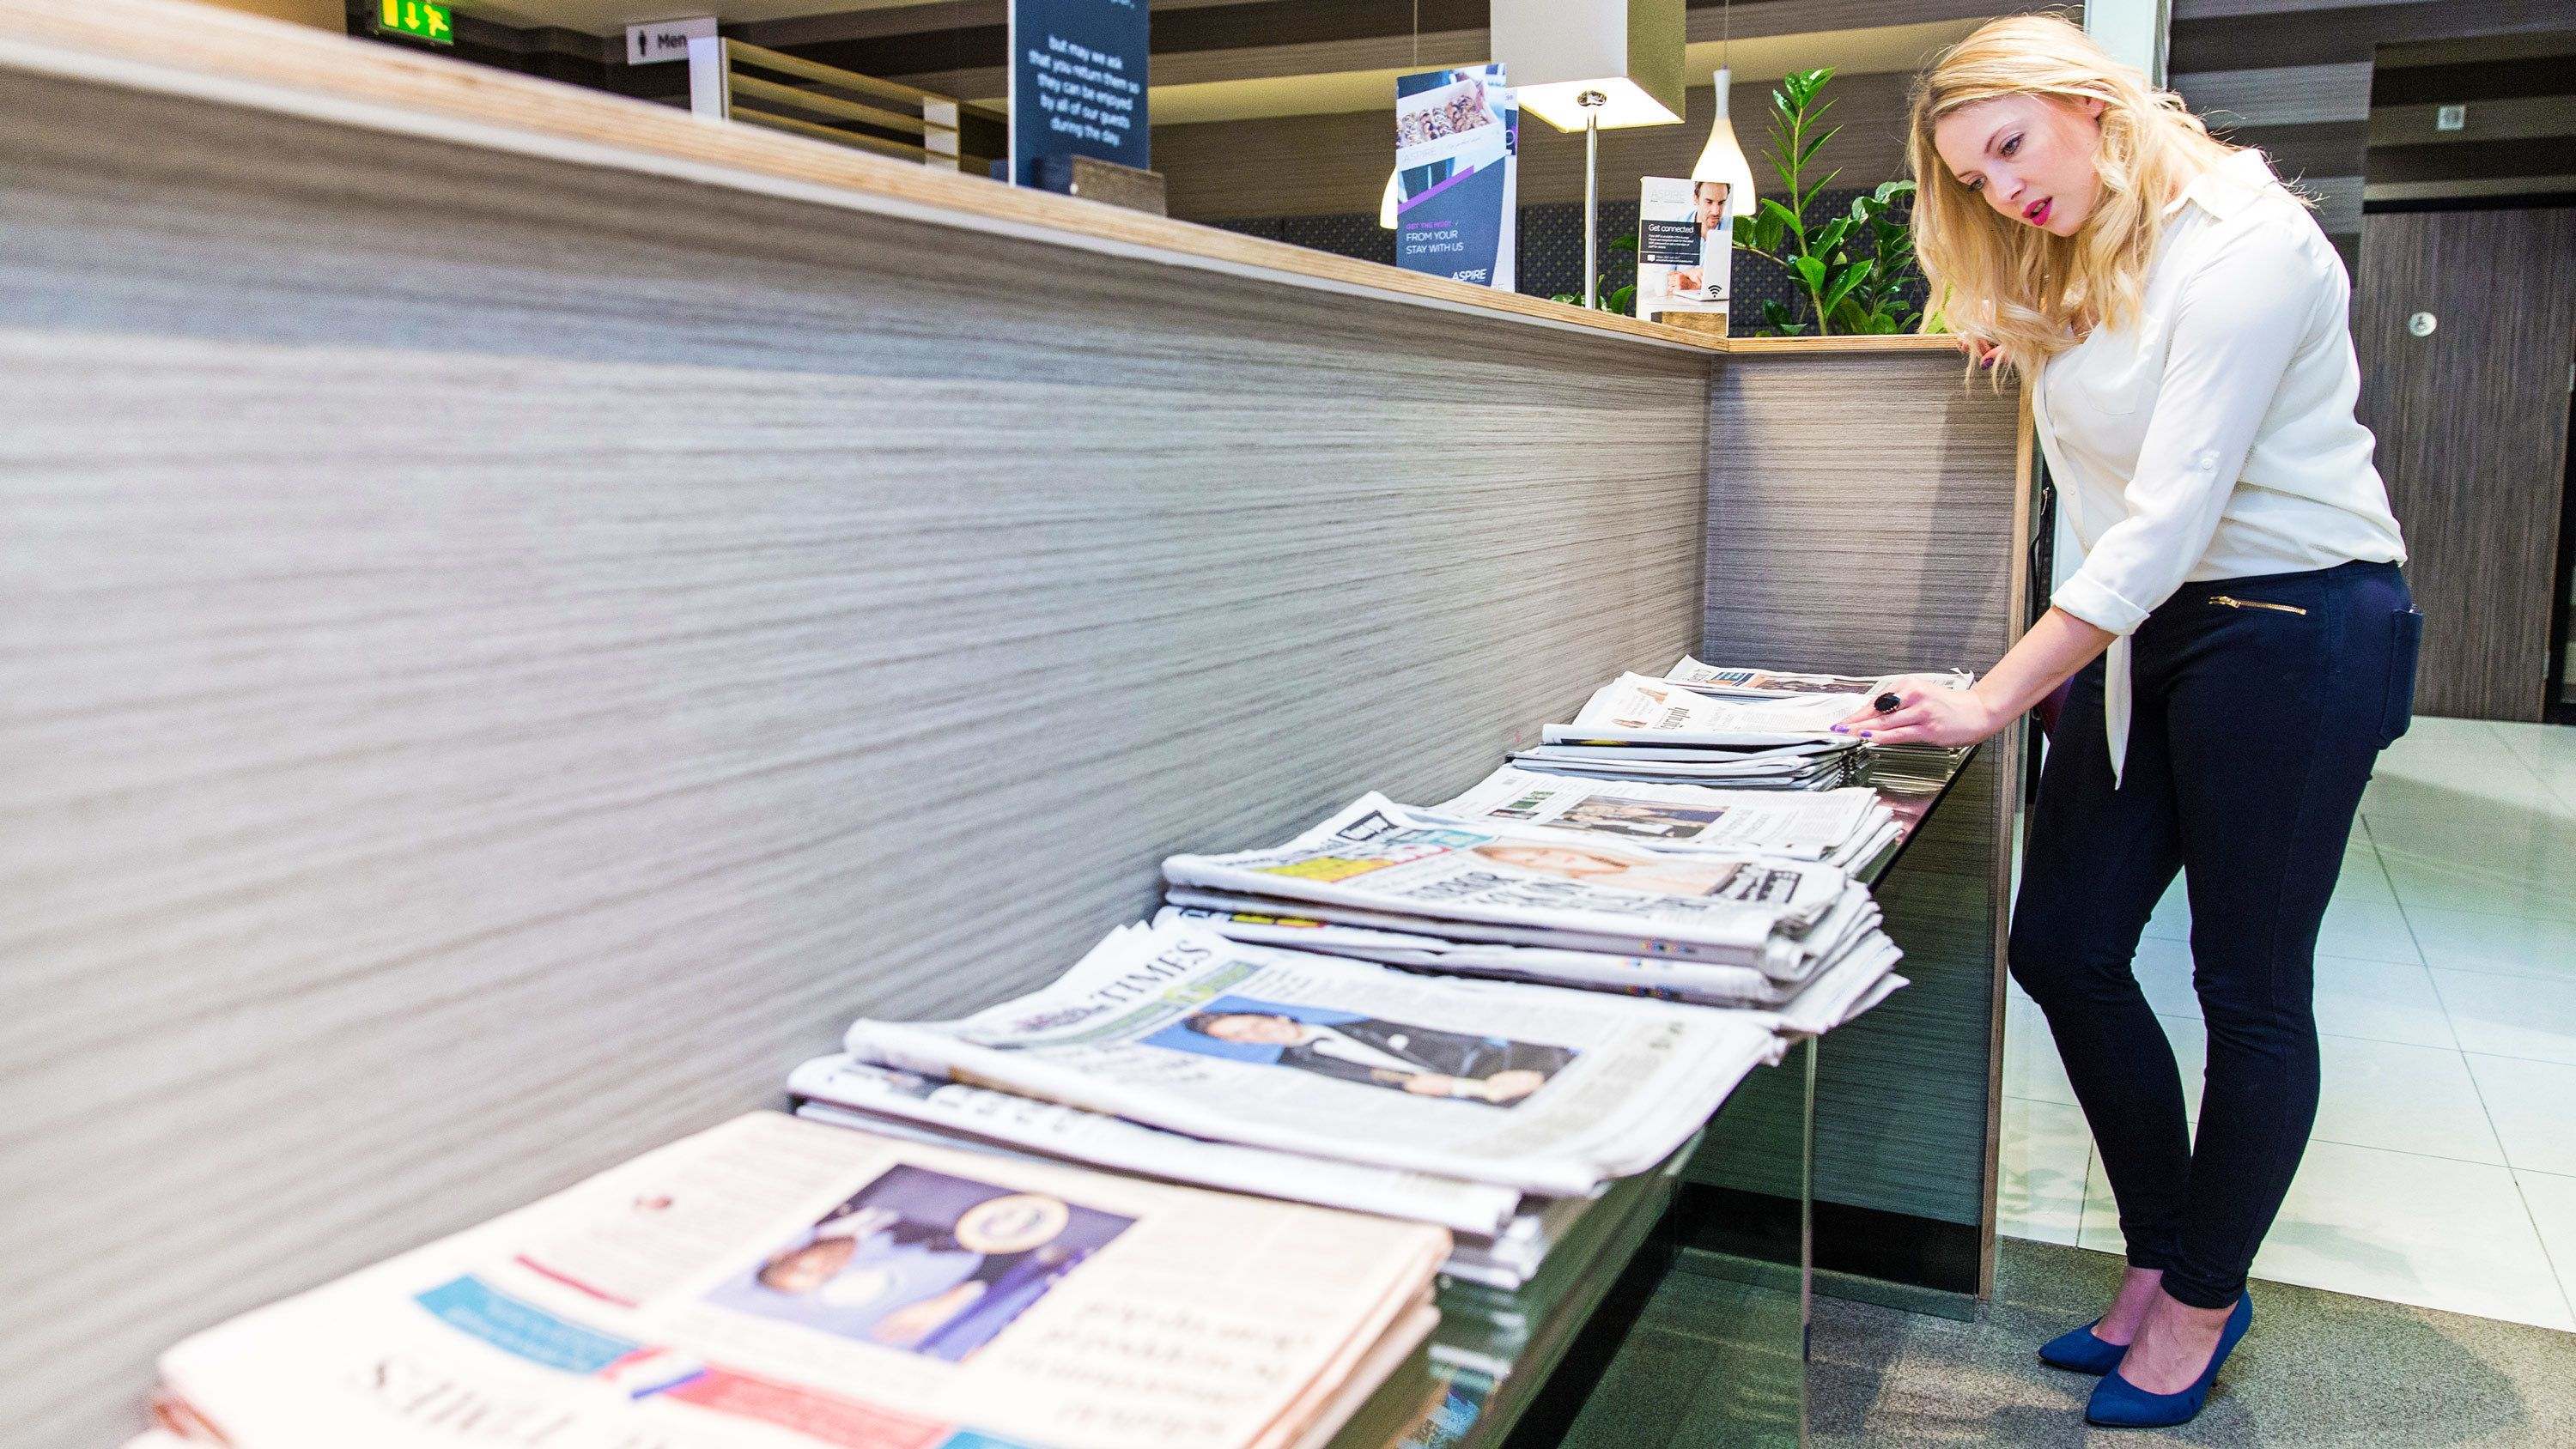 Woman looking at various newspapers at an airport lounge